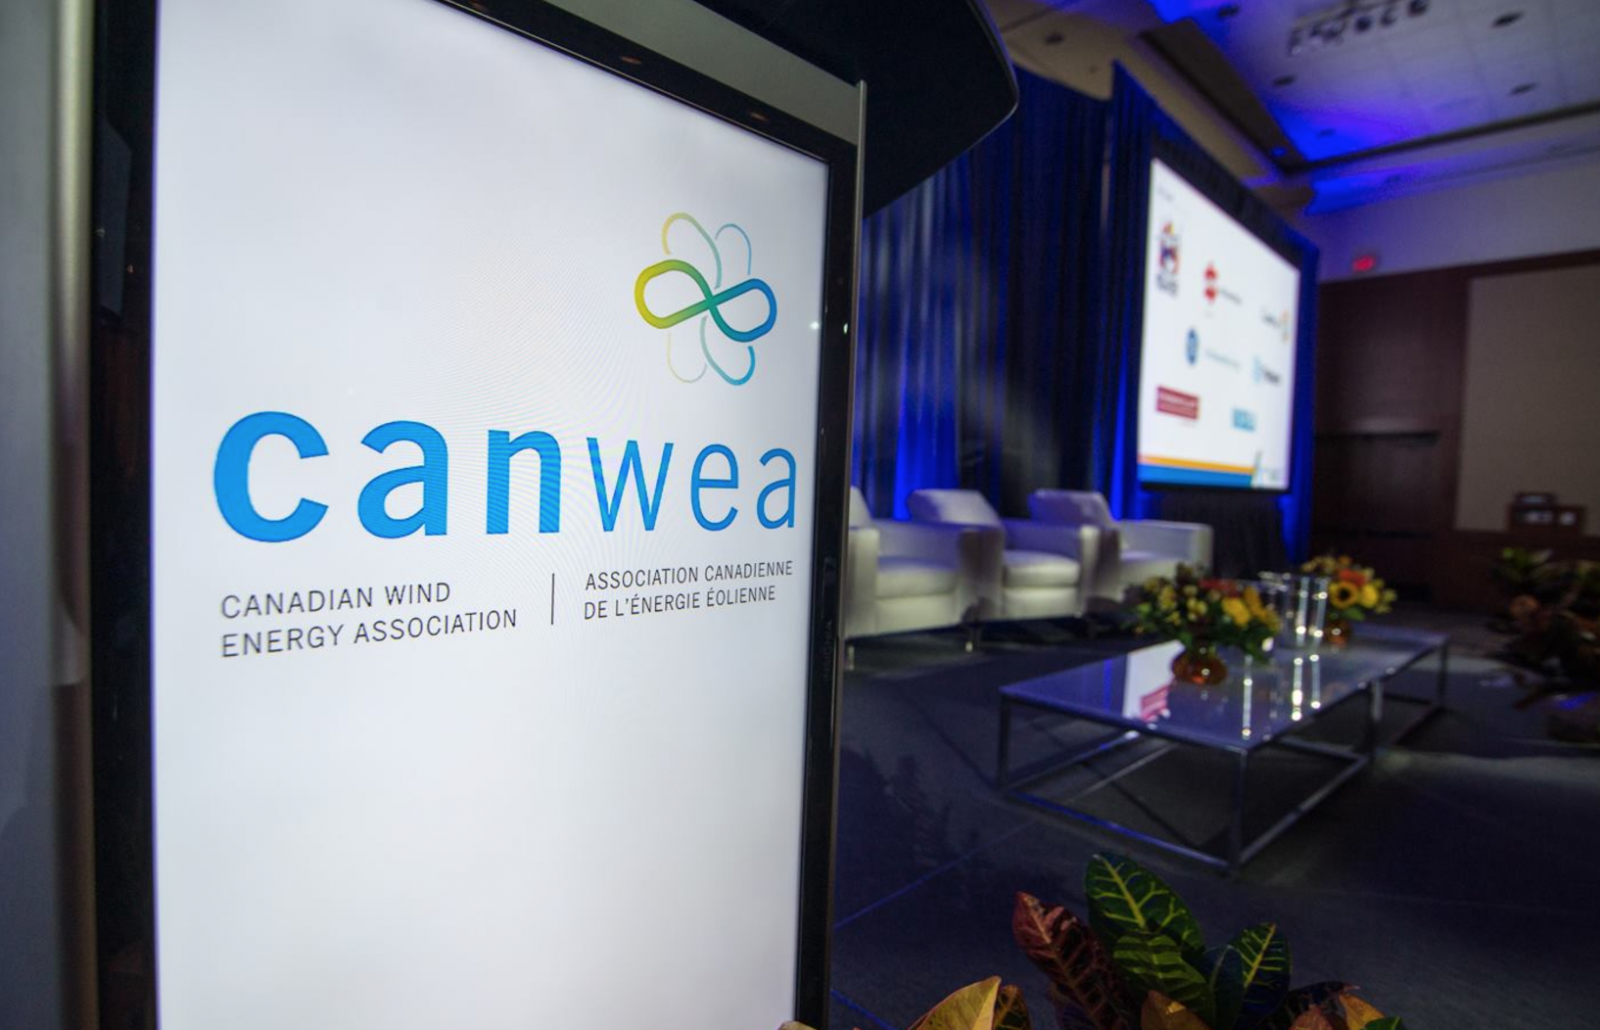 Canwea, Canadian Wind Energy Association, wind energy, renewable energy, clean energy